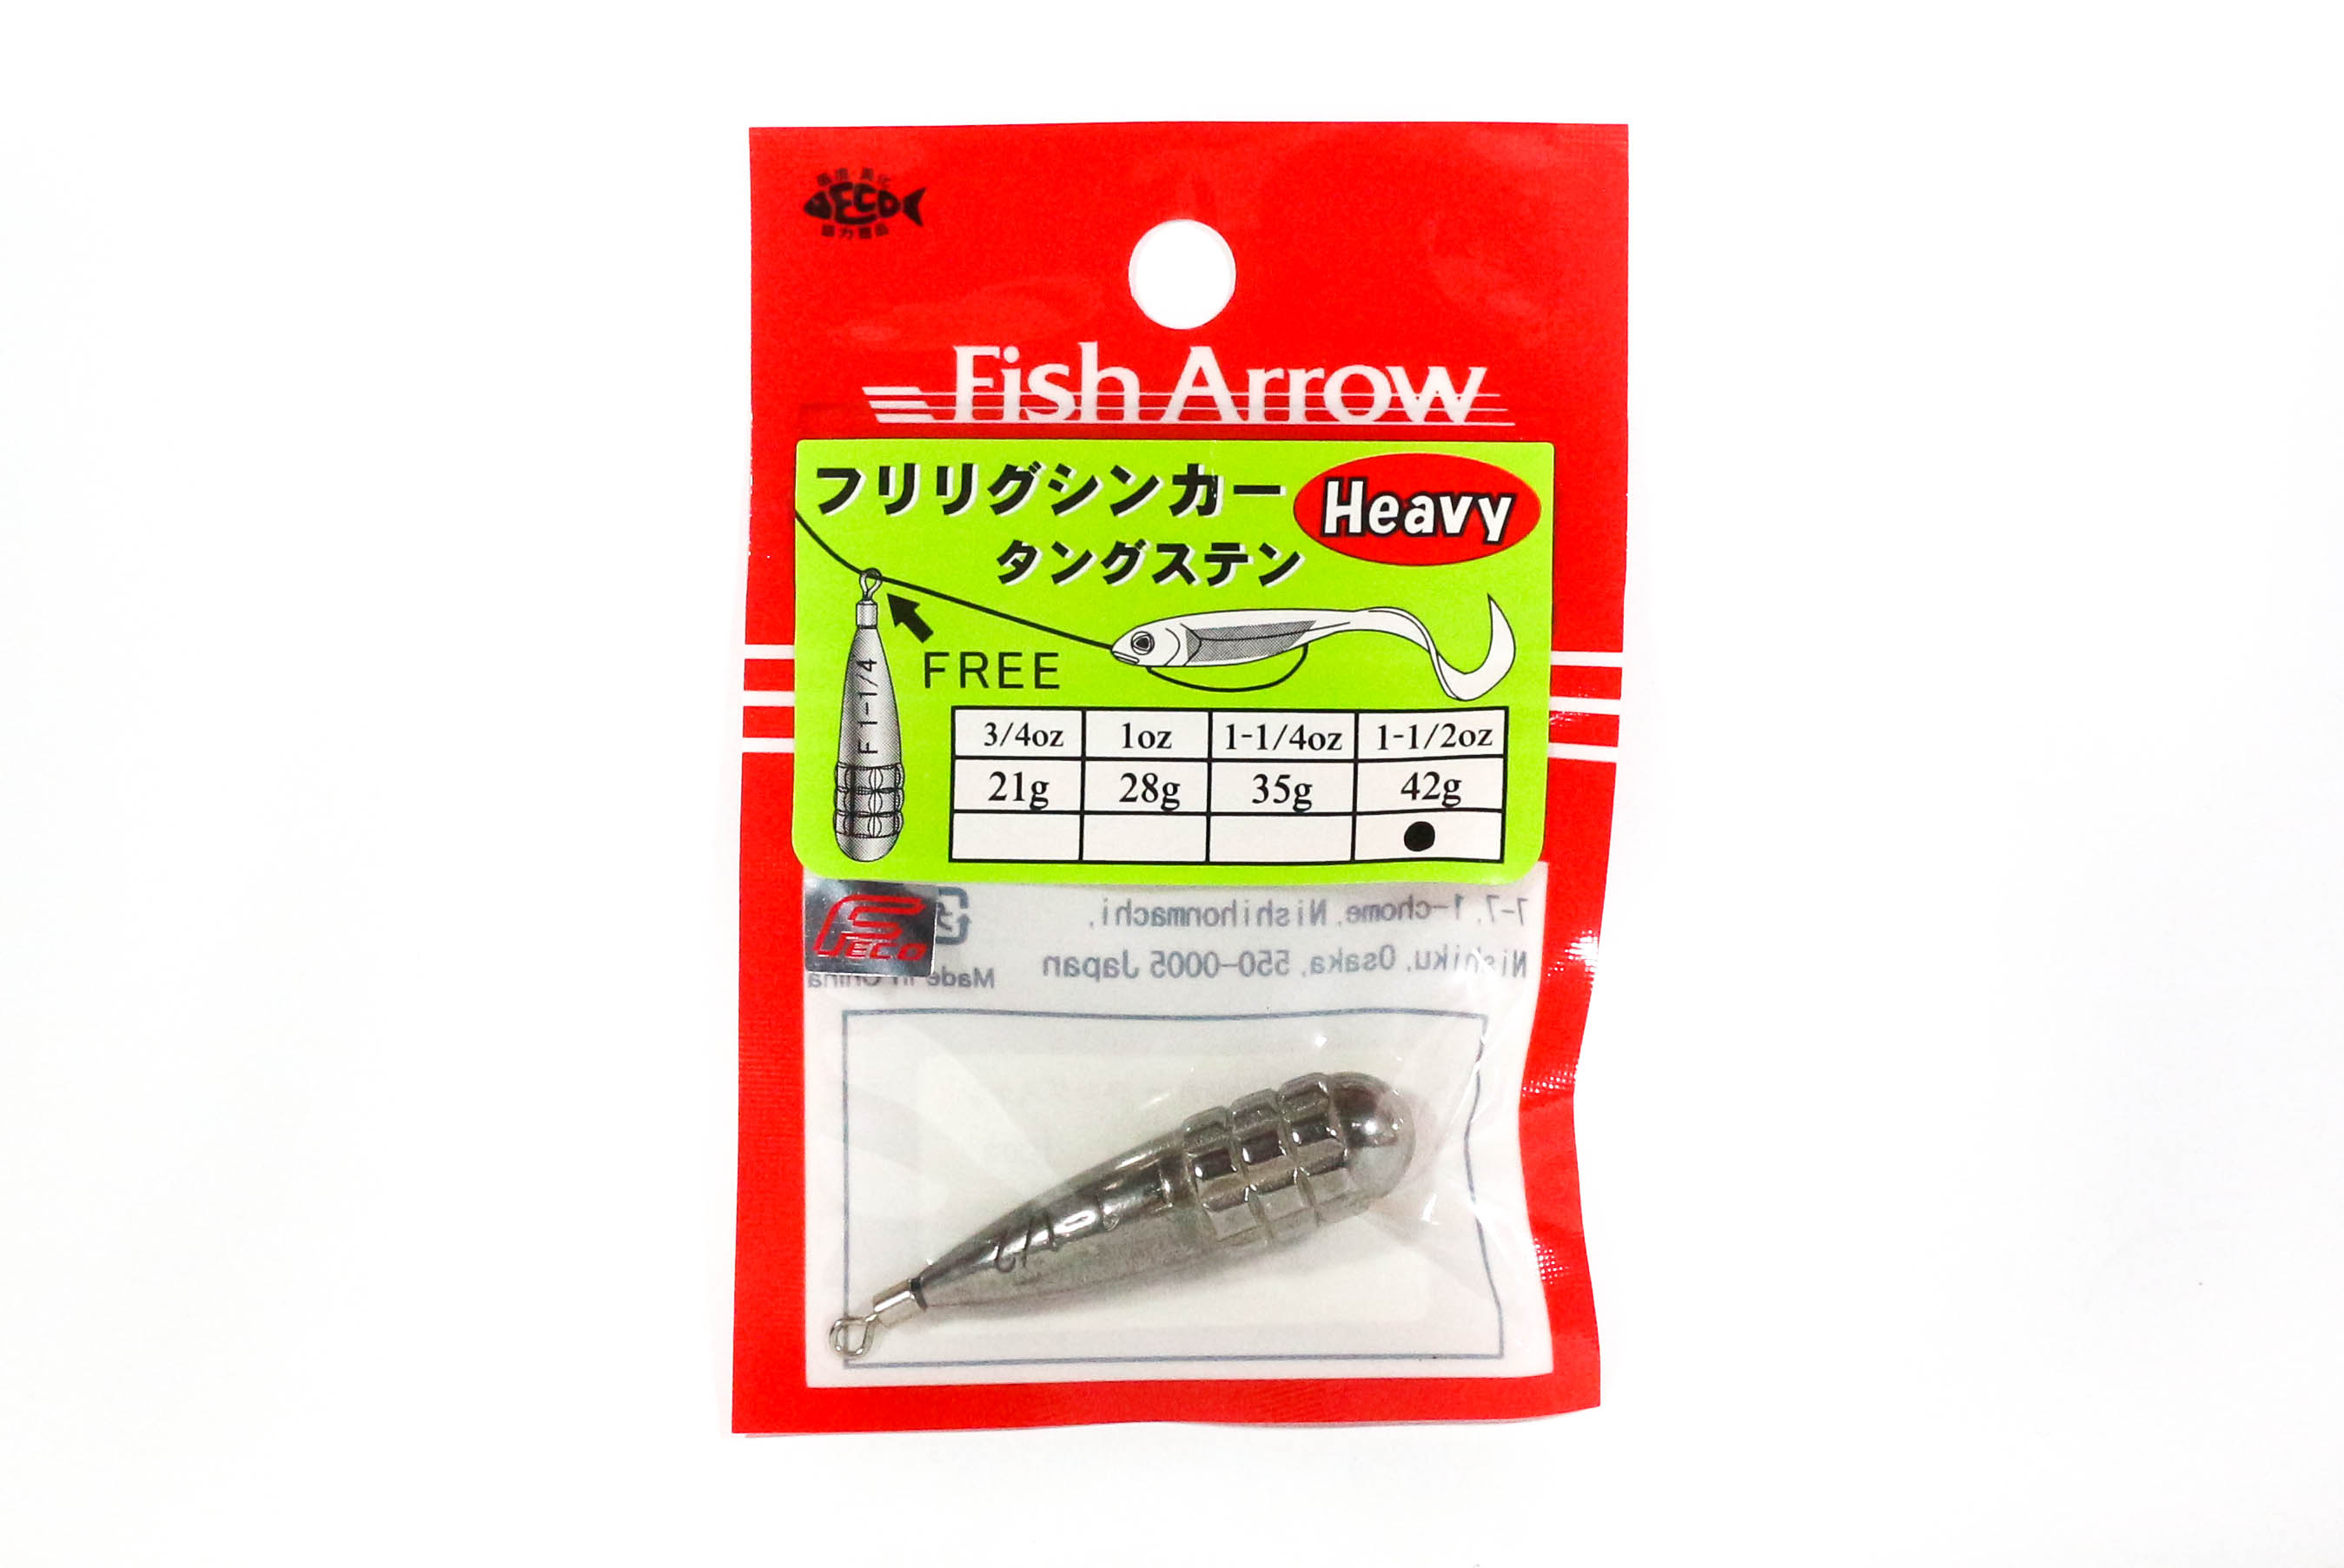 Fish Arrow Free Rig Tungster Sinker 1 1/2 oz 1 piece per pack (2725)